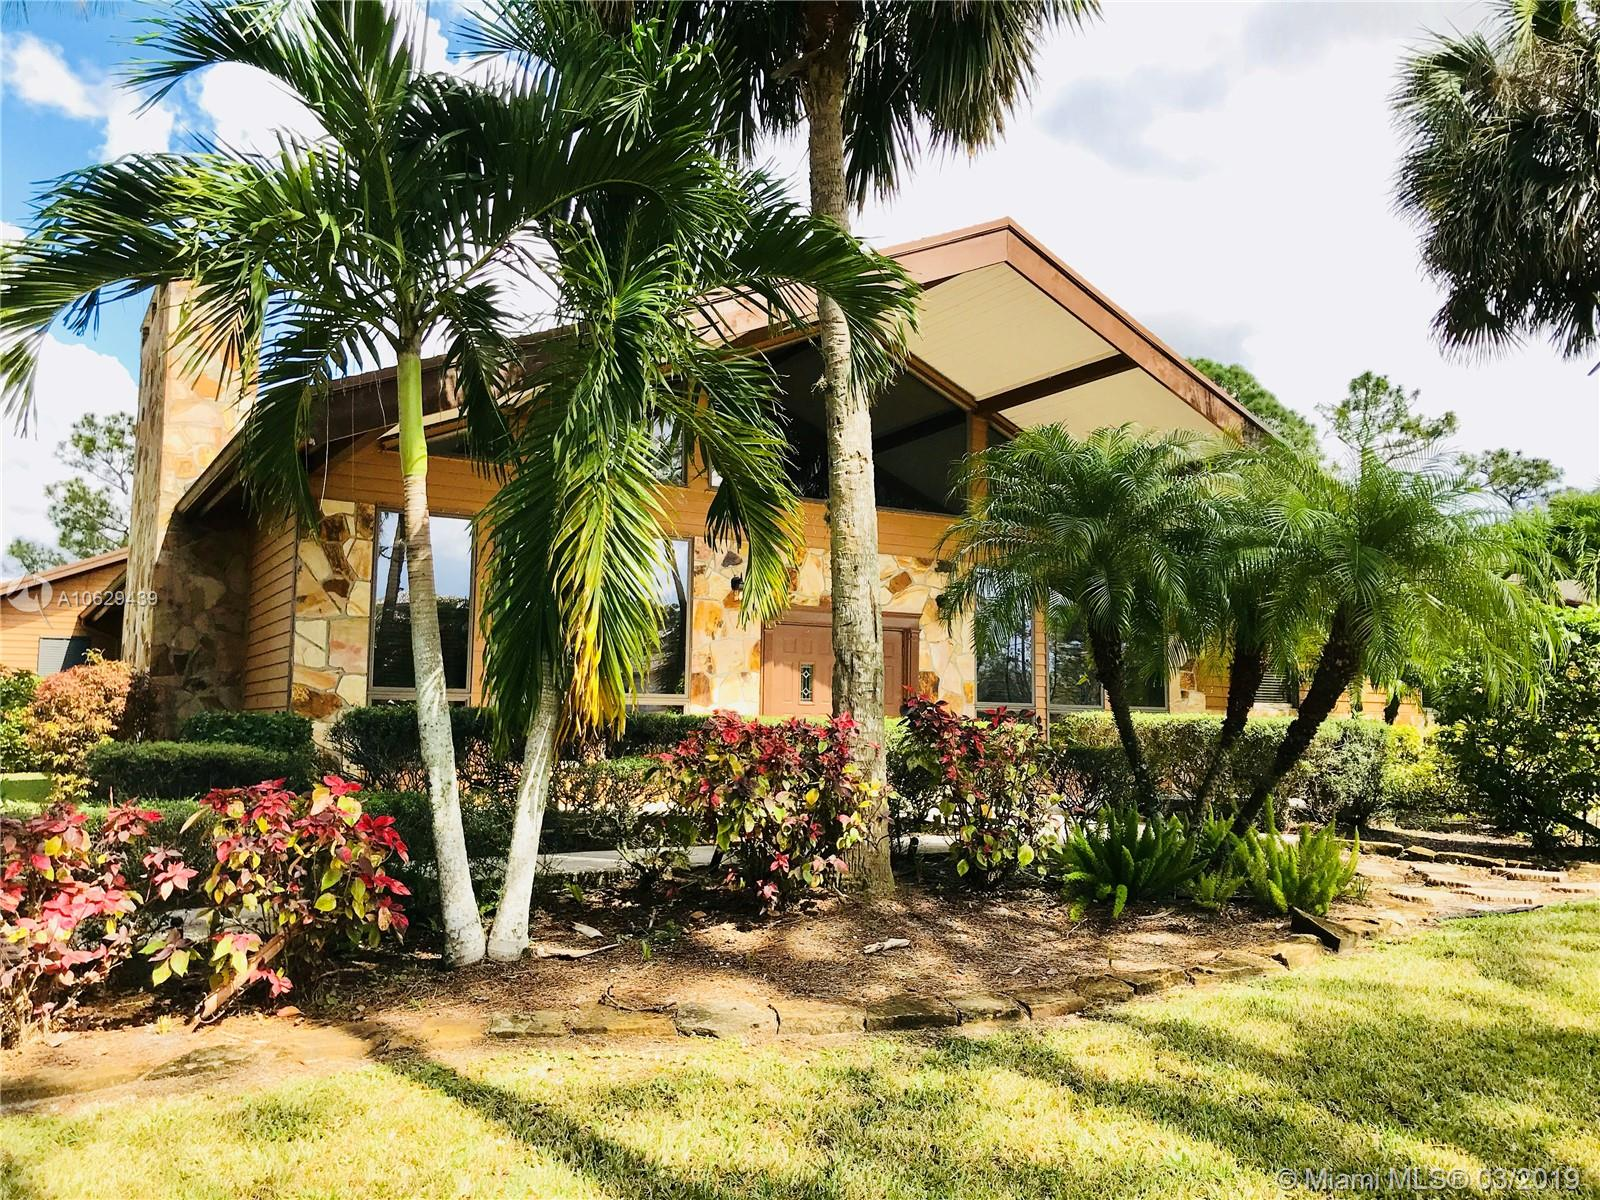 Perfect gated community Horse Farm House !!!! Horse Heaven !!! bring your horses bring your best Tenant !!!!  5 Acres with 4 stalls and beautiful lake front pool home !!! let's make a deal !!!